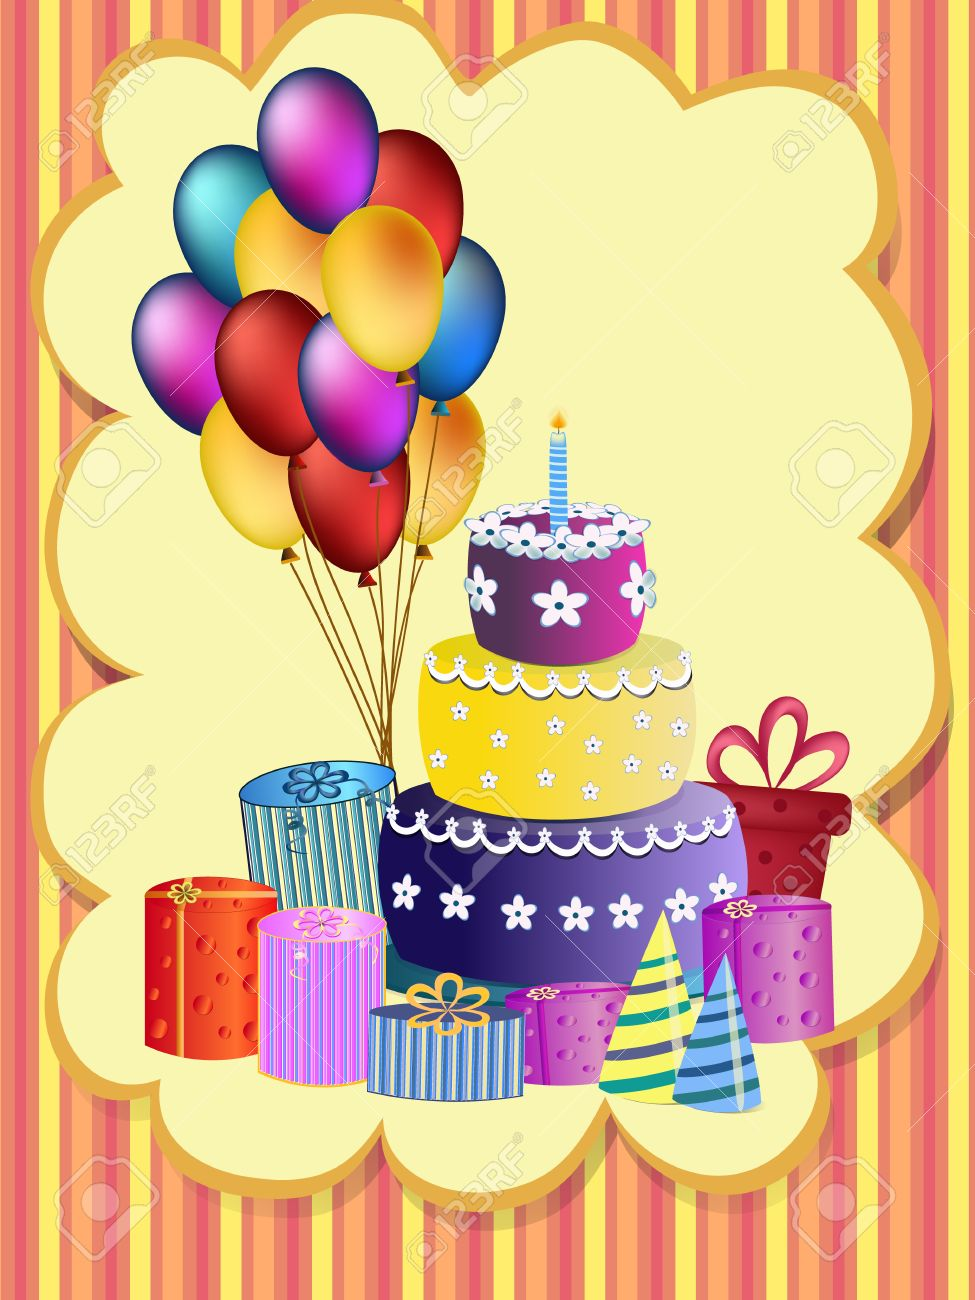 Happy Birthday Cake Balloon And Present Illustration Stock Vector